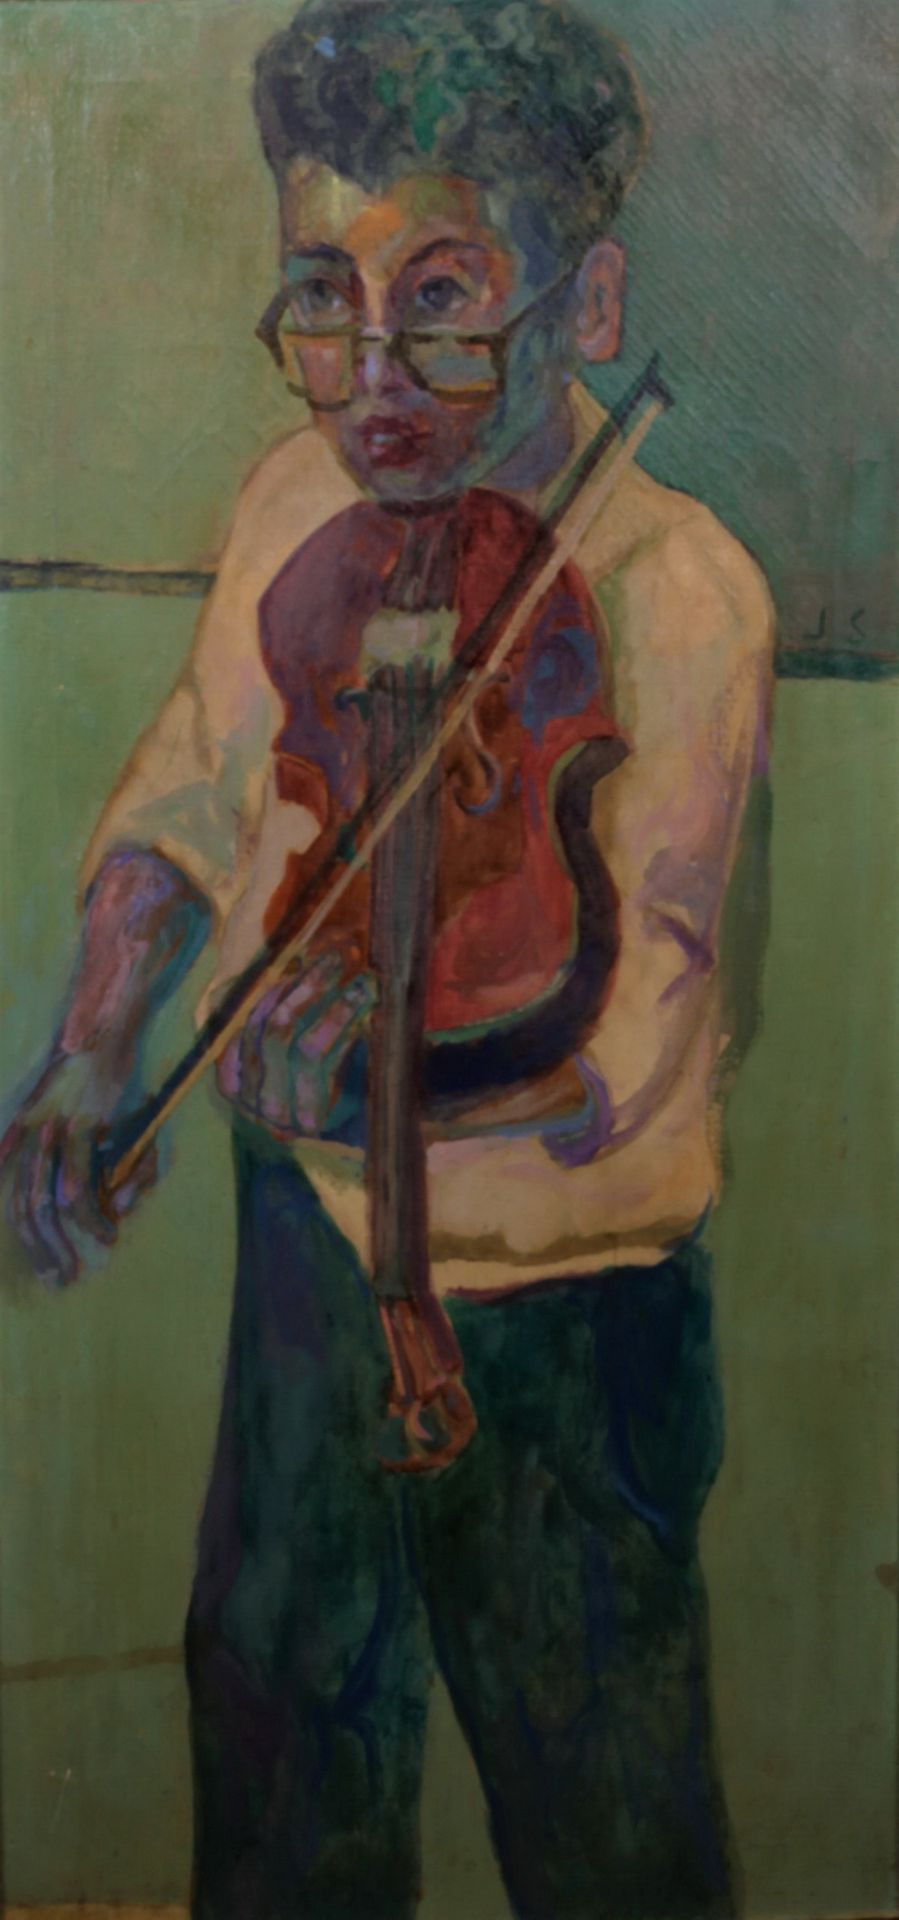 Solman, Joseph. A young boy with a violin. Signed and framed. 1950s. Oil on canvas. 97x46 cm.